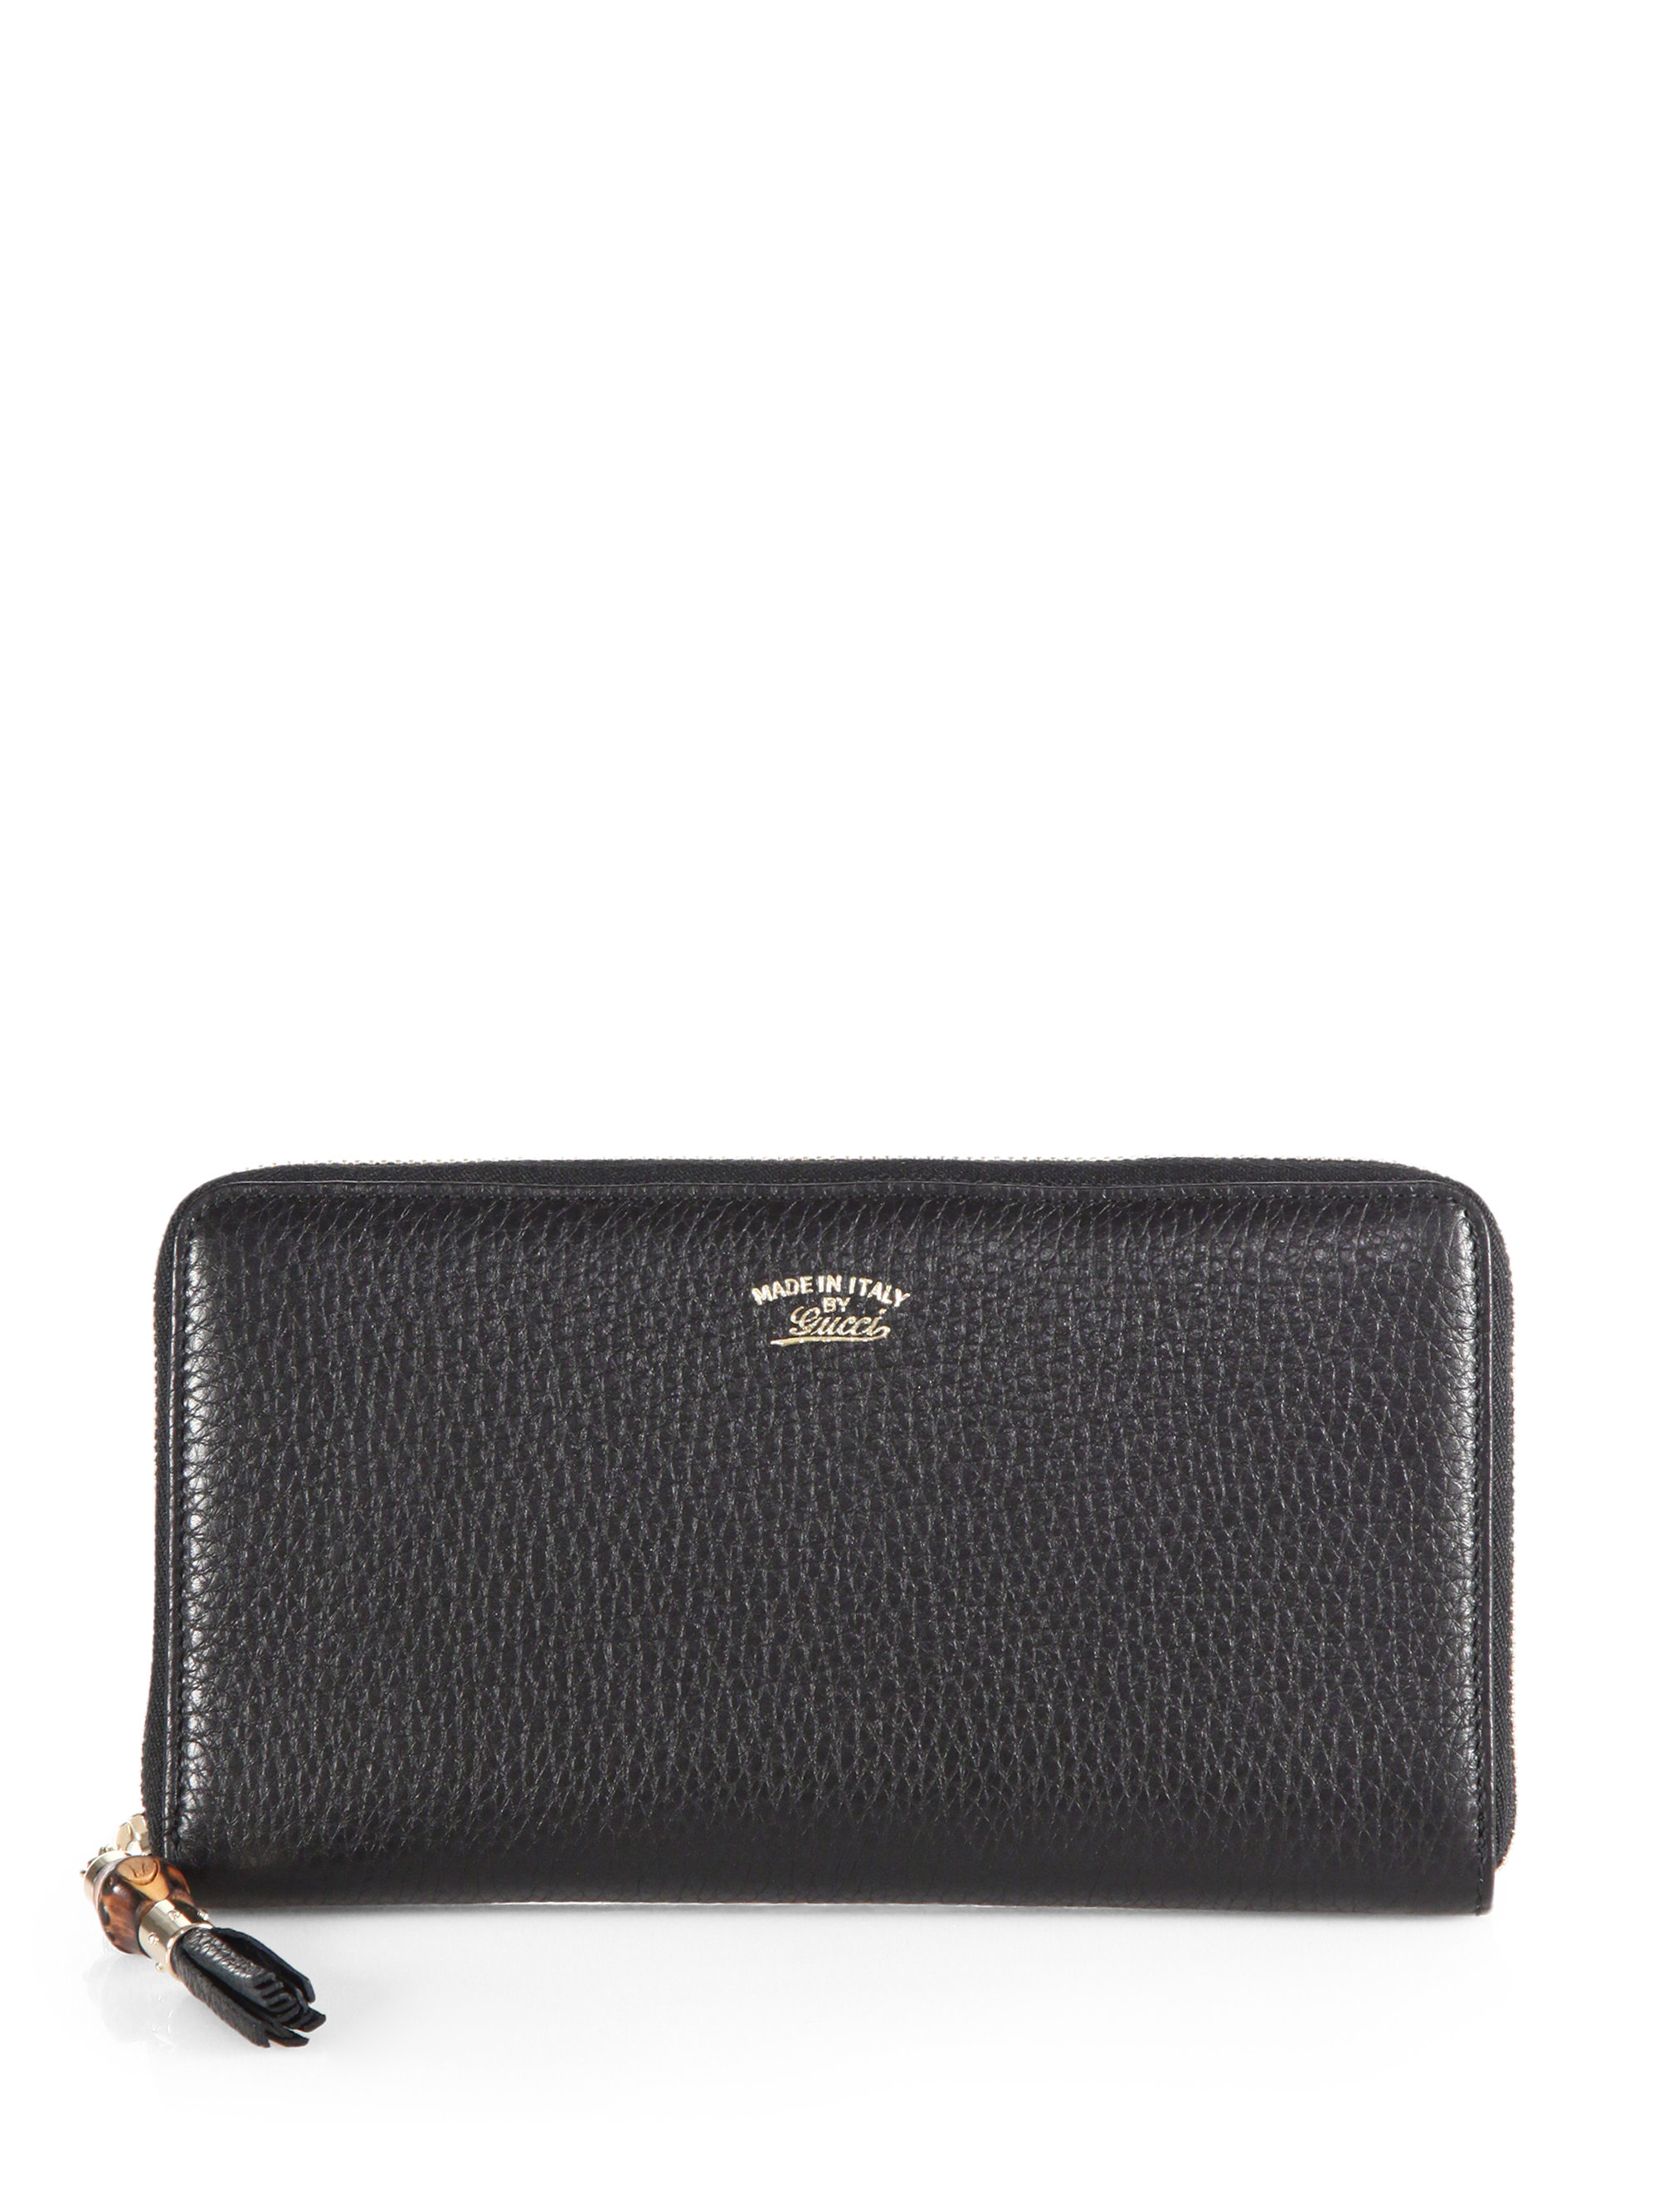 afd259c4d356 Black Gucci Wallet | Stanford Center for Opportunity Policy in Education